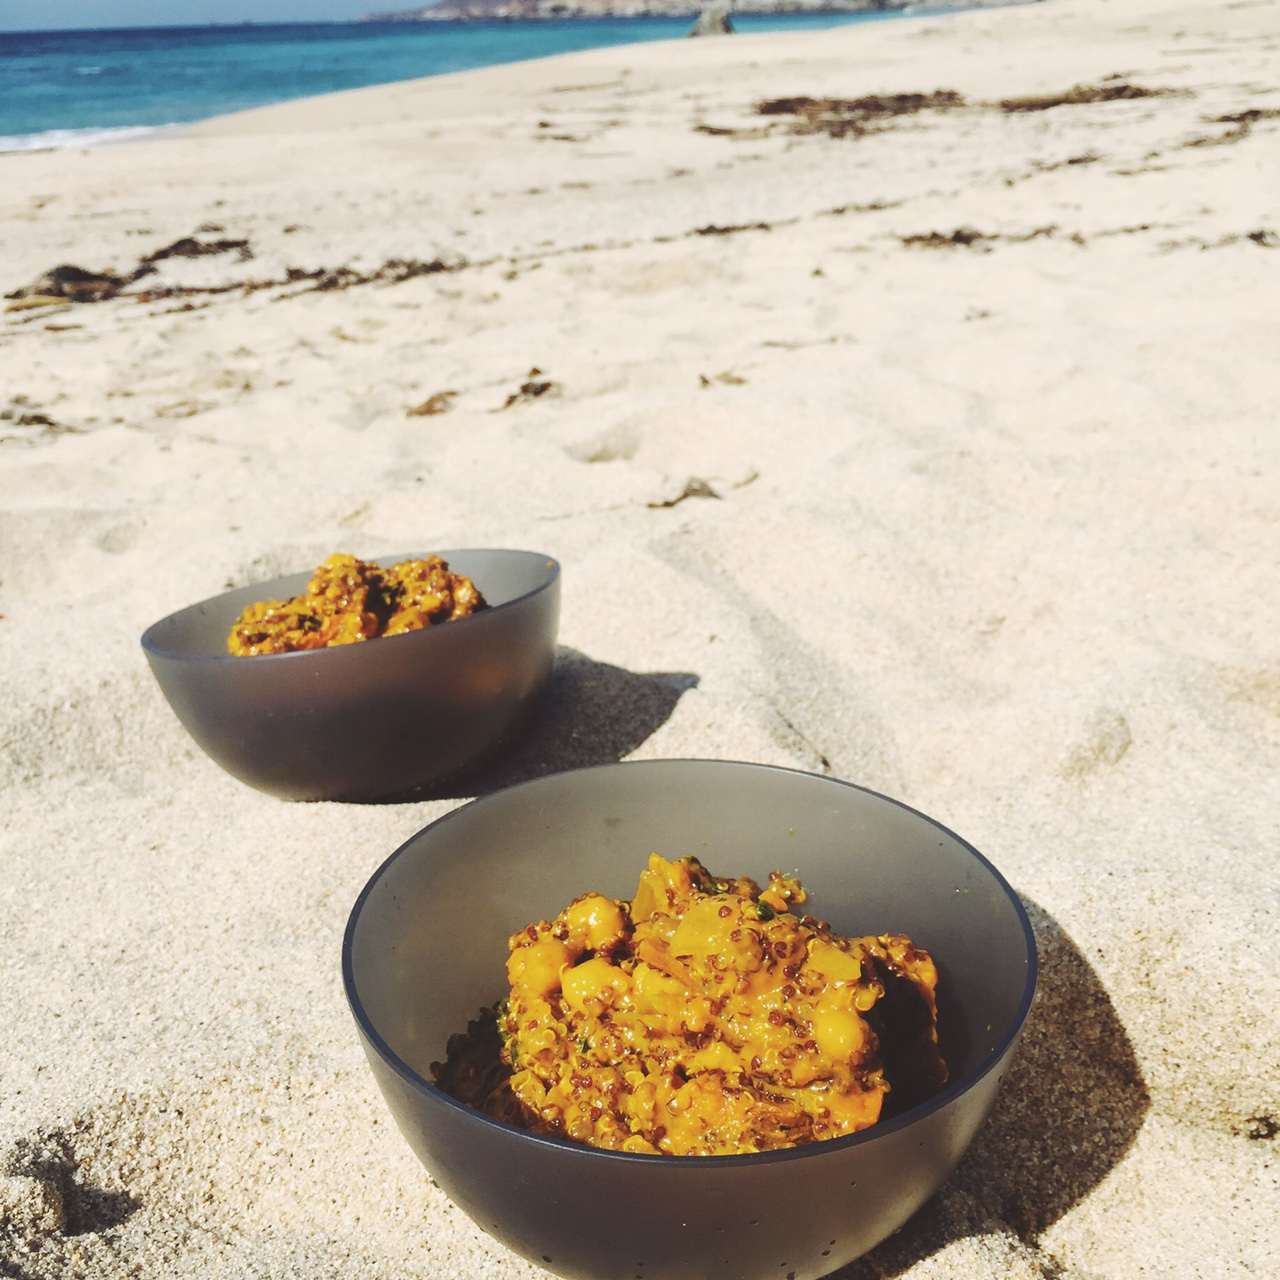 Camp Food 101: 5 Recipes for eating healthy while camping